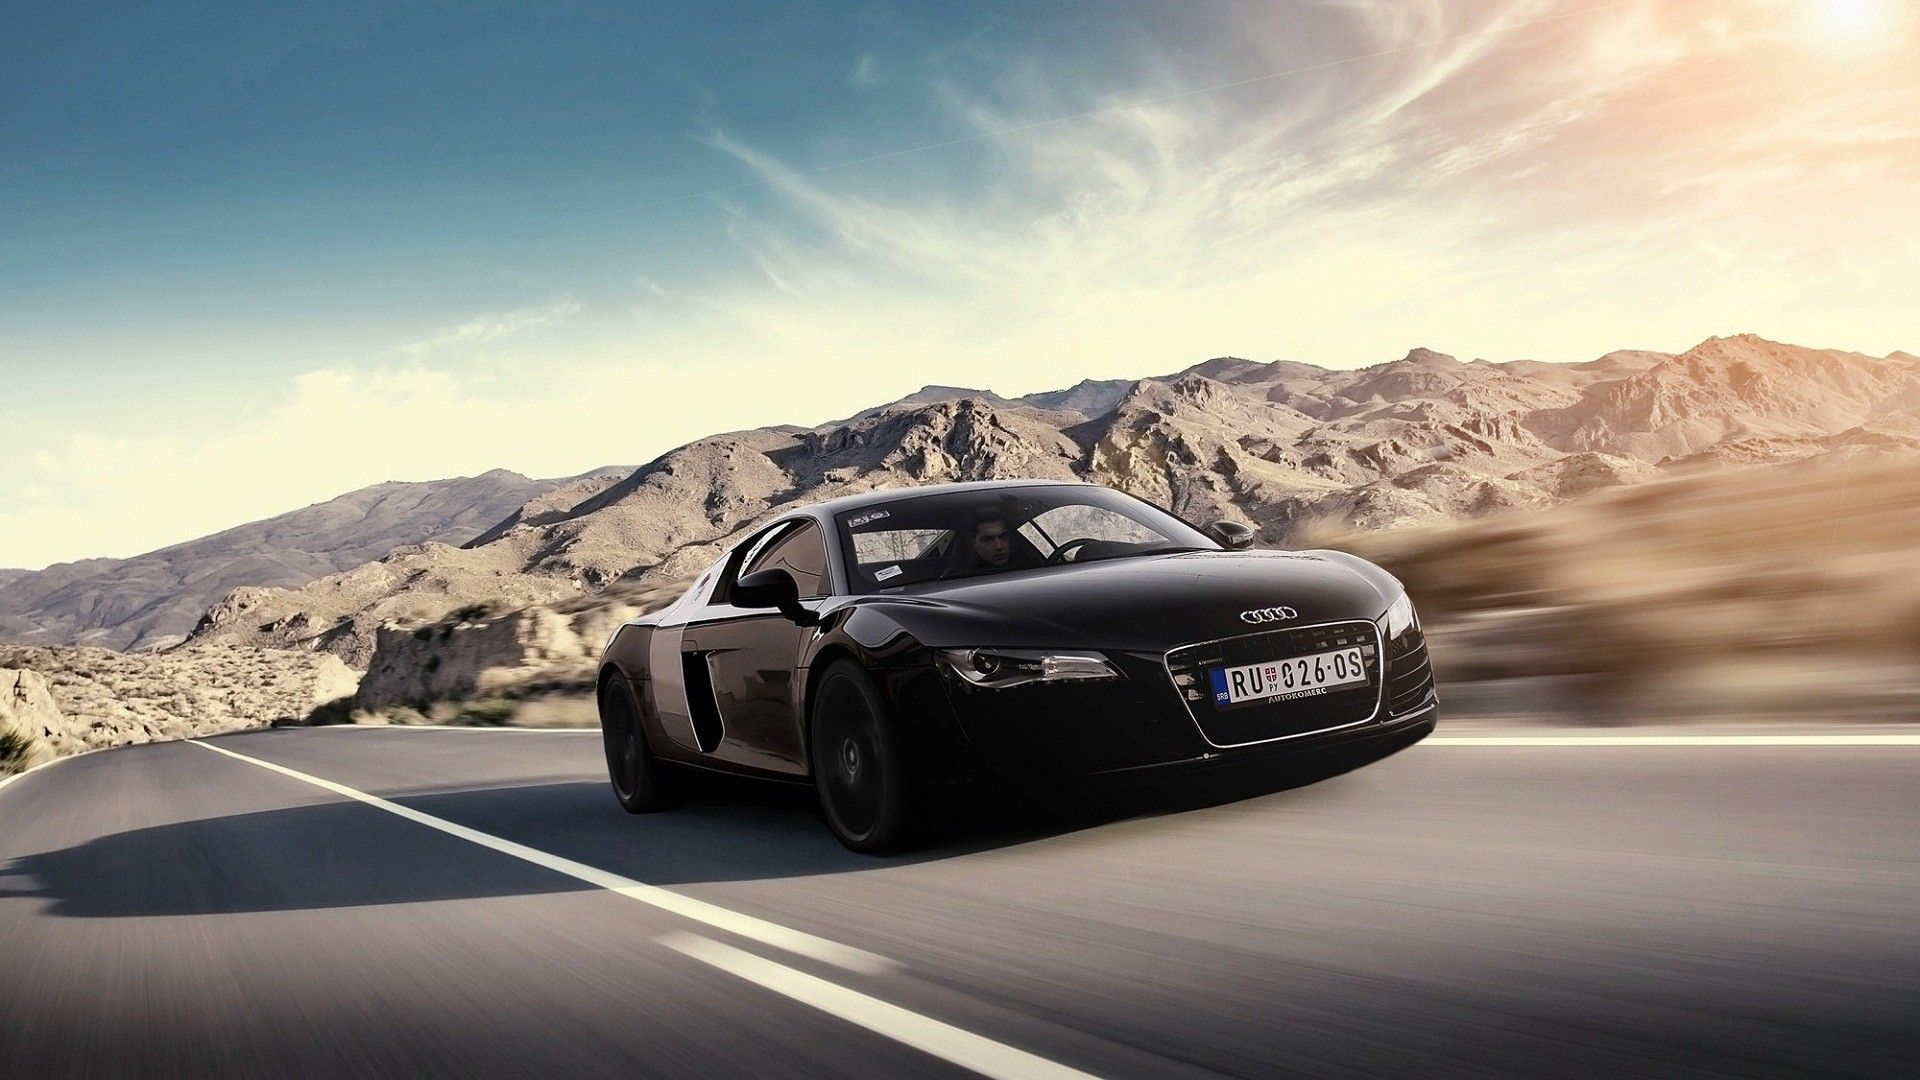 Audi R8 Wallpapers Top Free Audi R8 Backgrounds